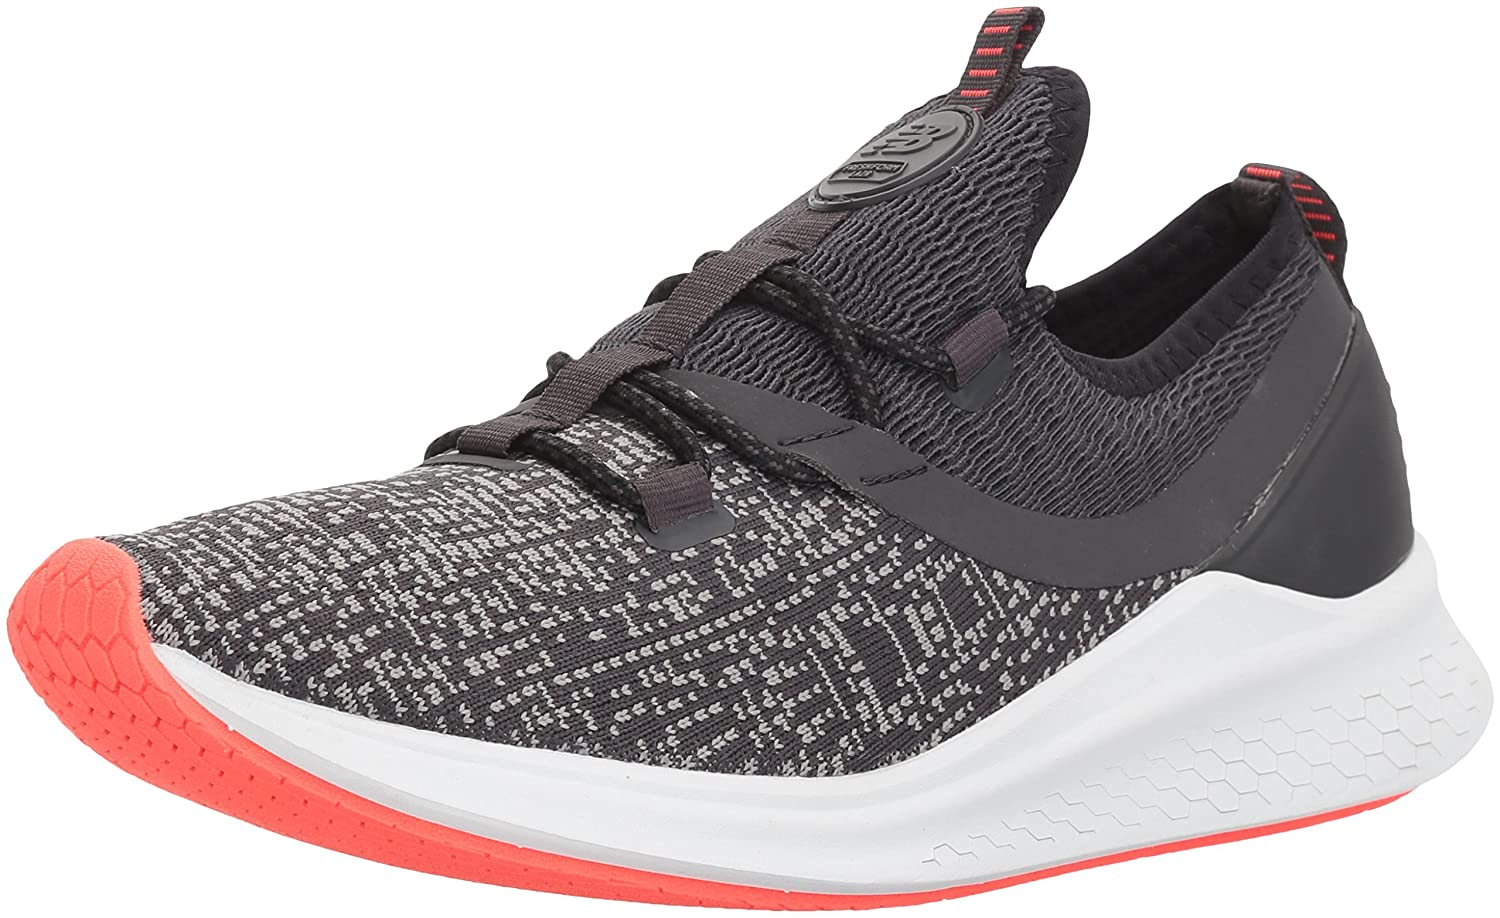 New Balance Women's Fresh Foam Lazr V1 Sport Running Shoe B06XSBCZ99 5 D US|Team Away Grey/Phantom/White Munsell